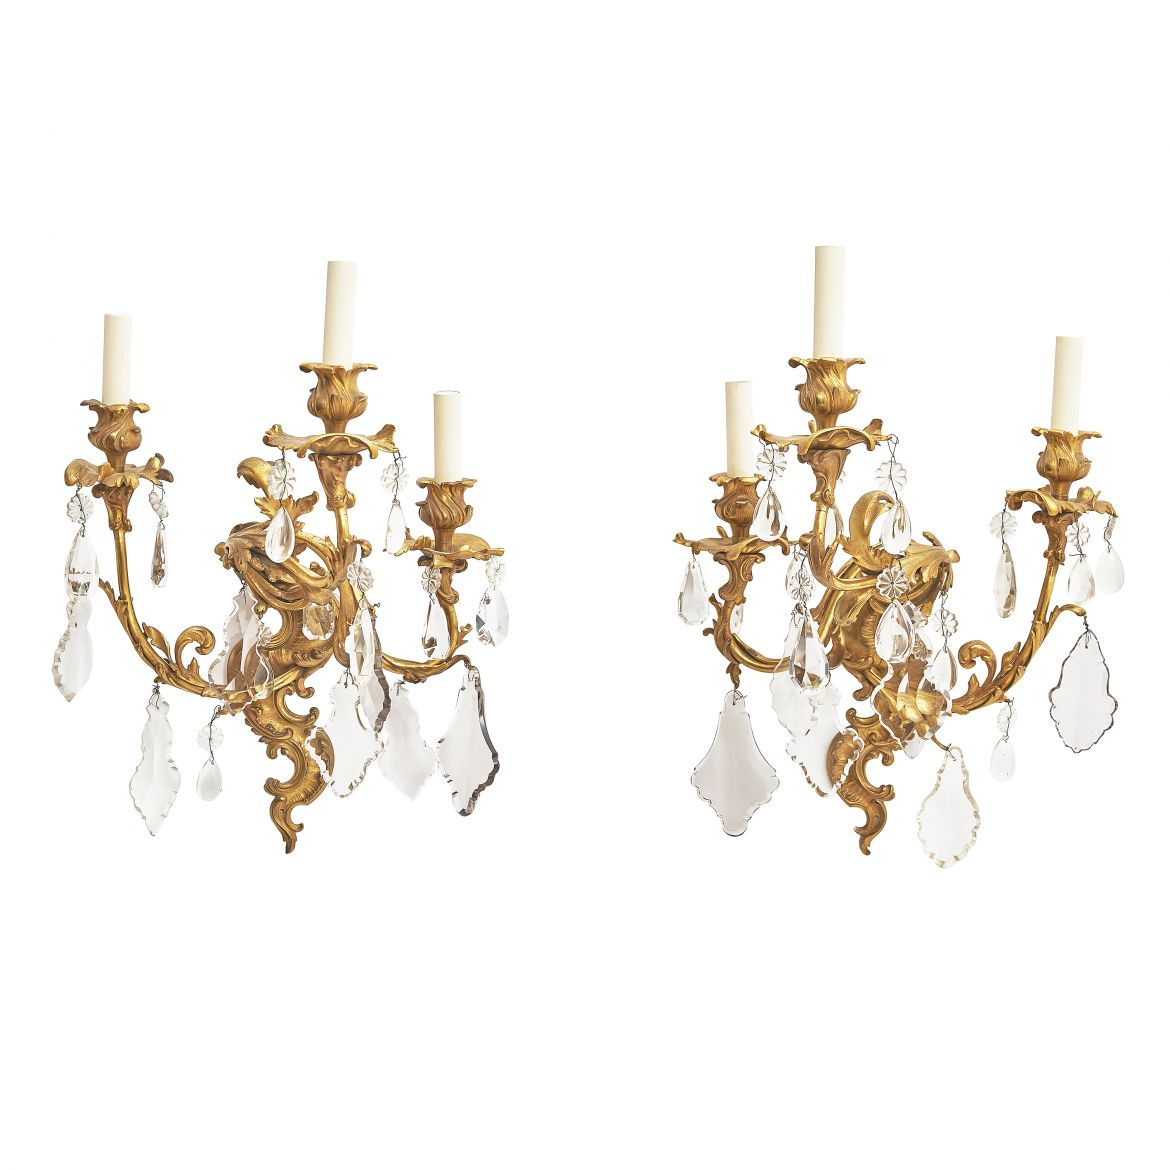 Ormolu  & Crystal Drop Wall Lights